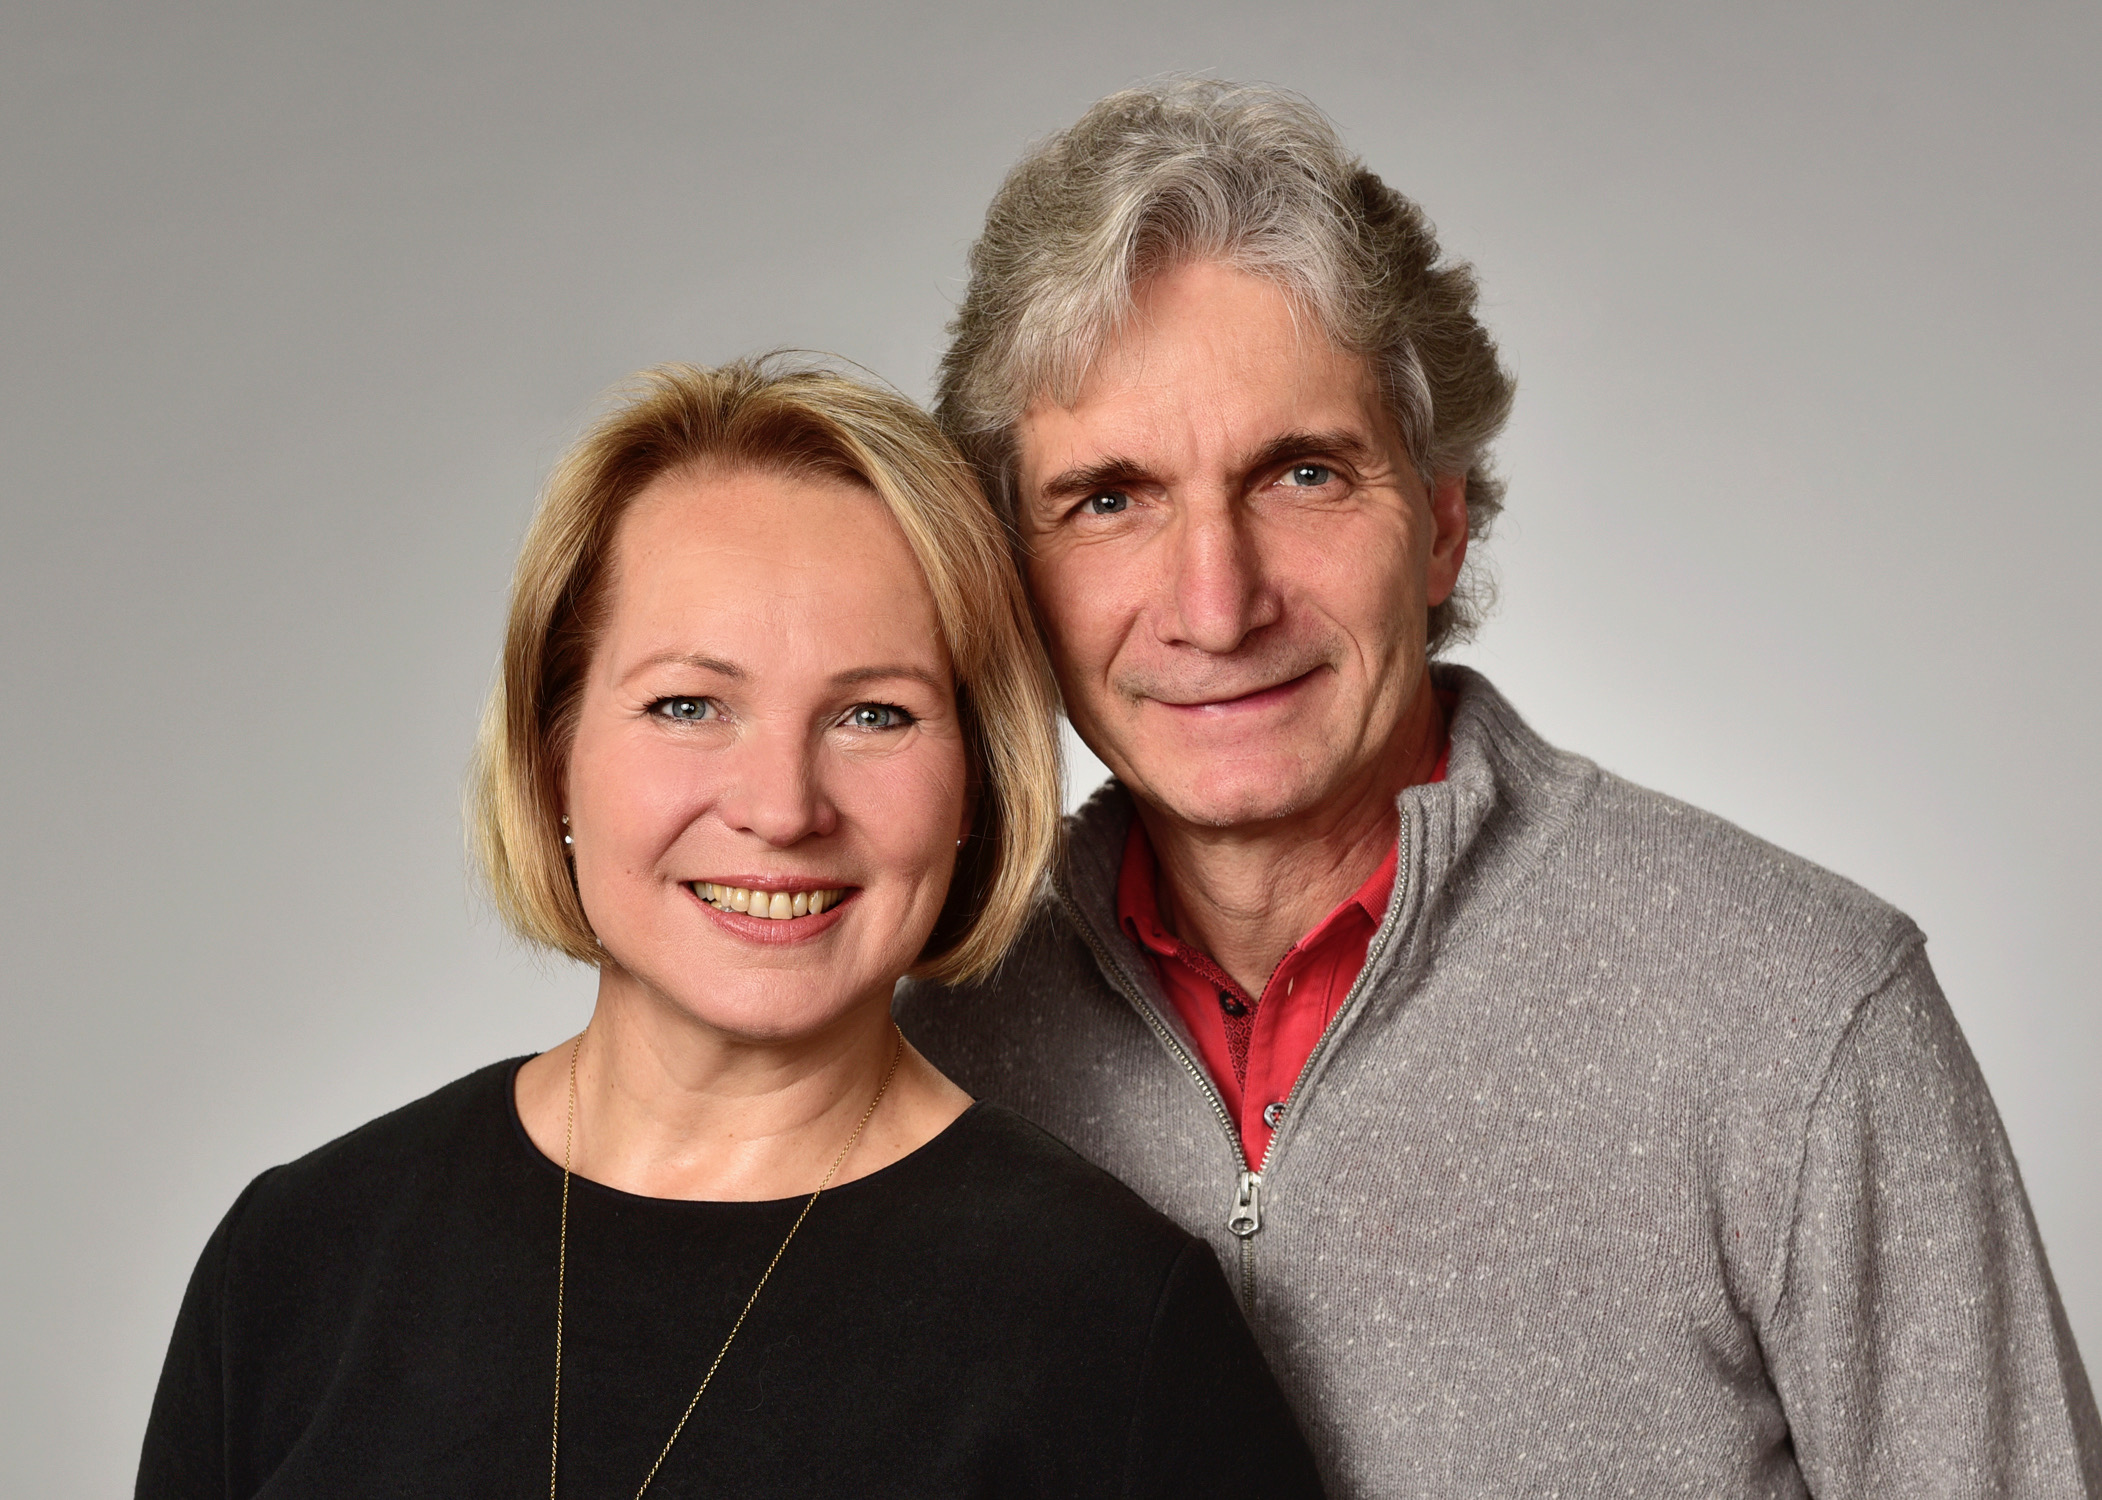 Andreas & Martina Zerger